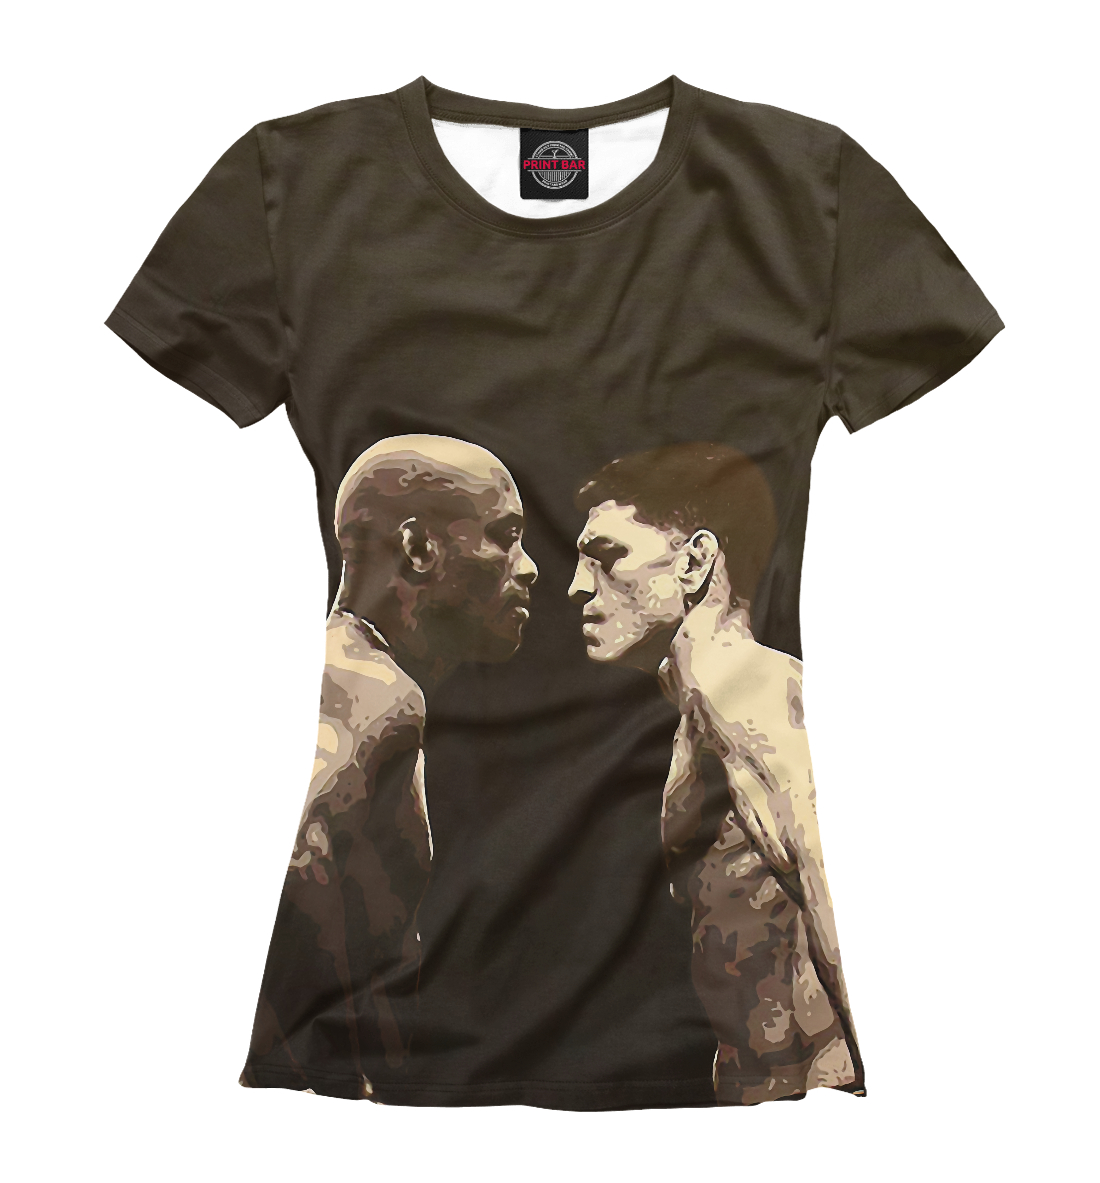 Купить Anderson Silva and Nick Diaz, Printbar, Футболки, MNU-958983-fut-1